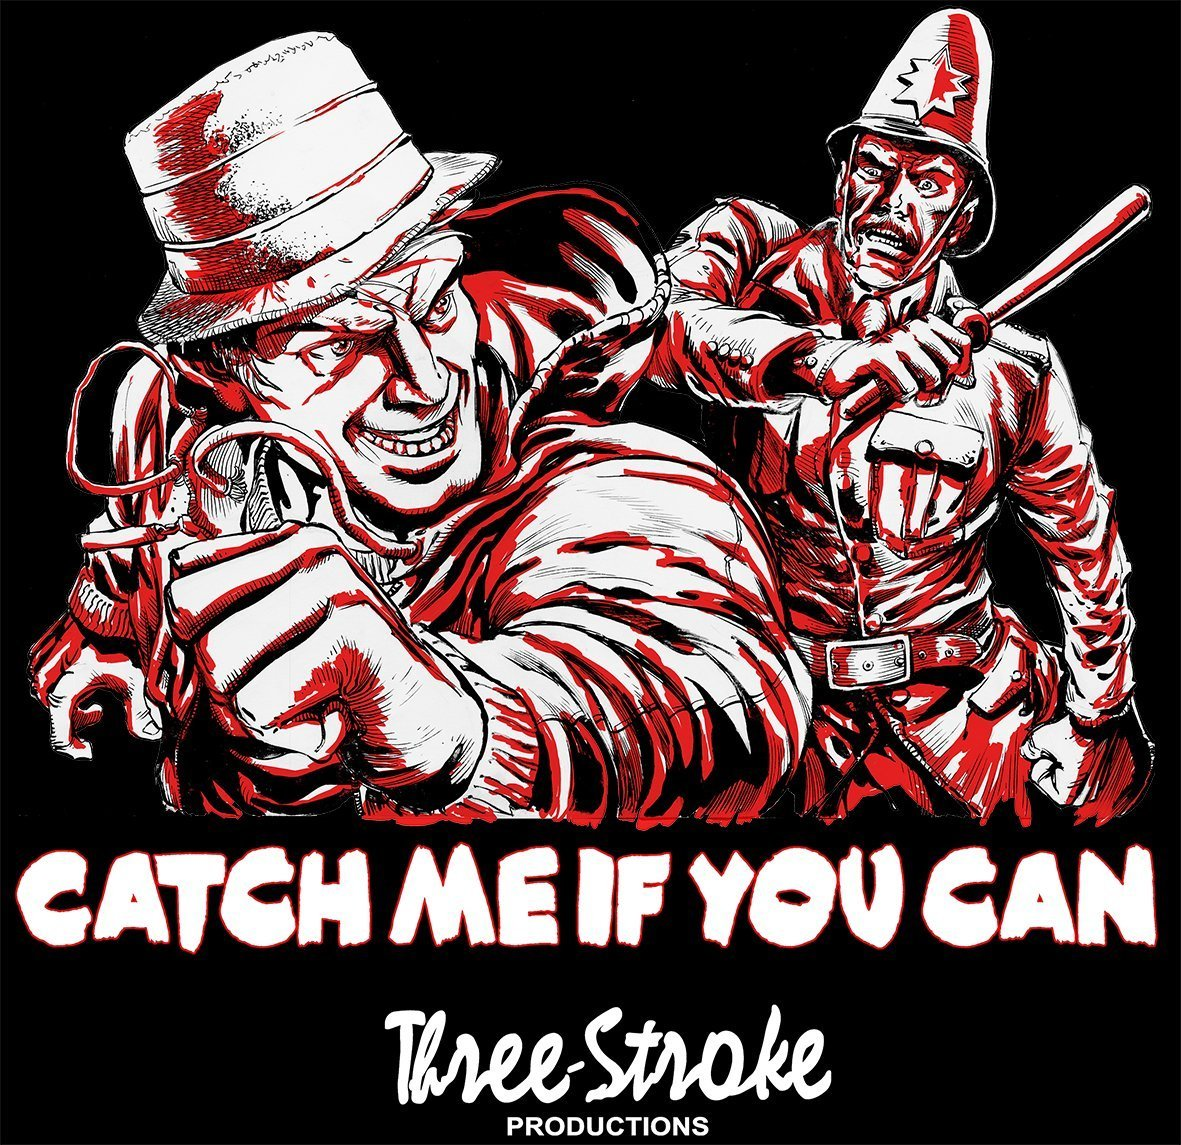 catch me if you can t shirt three stroke productions